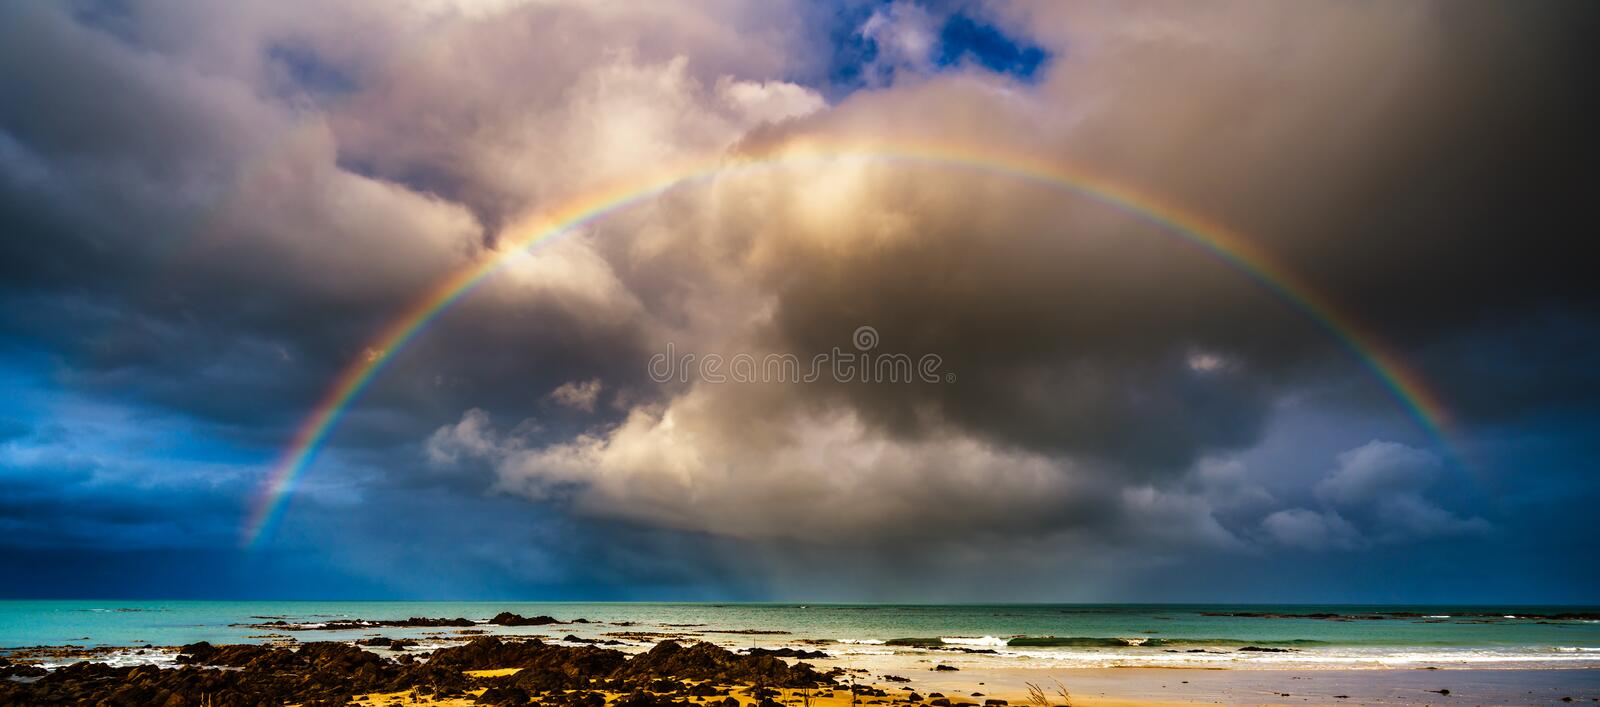 Rainbow over the Sea. After storm, sunshine comes again, we see beautiful rainbow over the sea, New Zealand royalty free stock photography